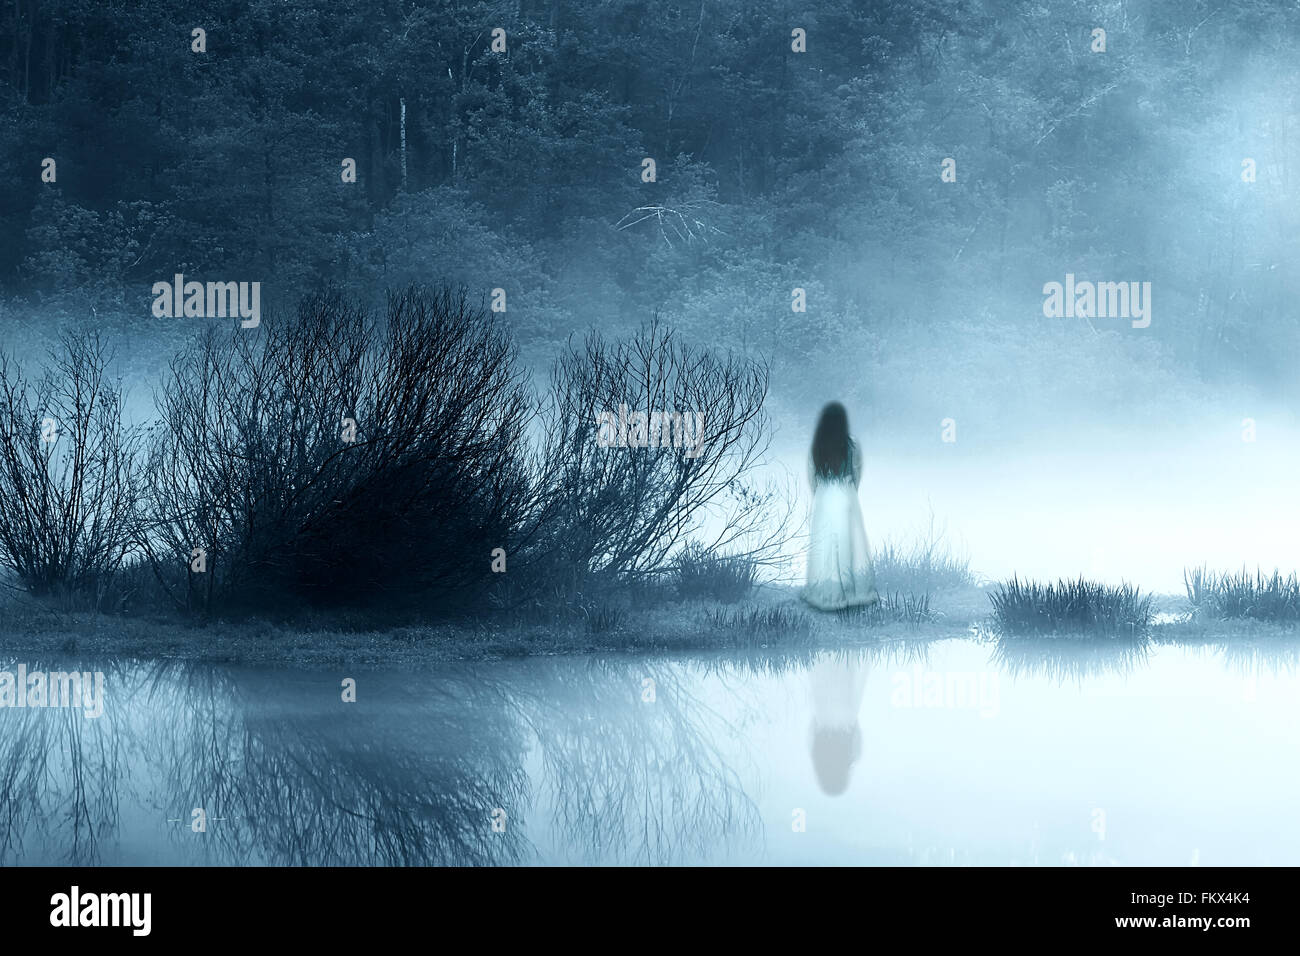 Mysterious Woman in the Mist - Stock Image